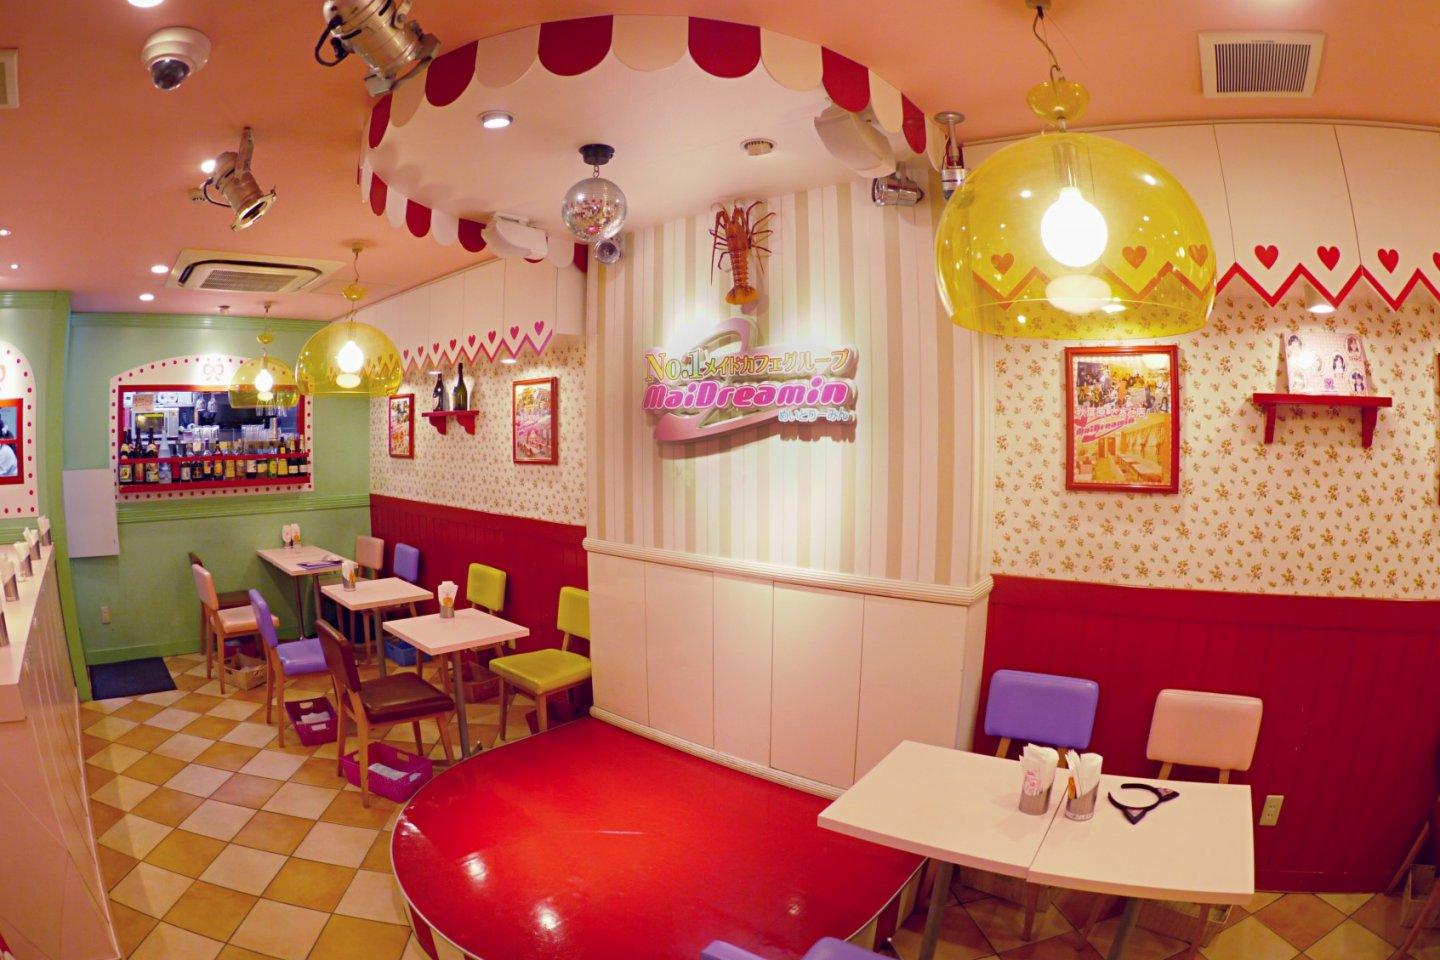 You can take a picture with the maids in this cornerat Maidreamin Cafe in Denden town near Nanba Osaka.